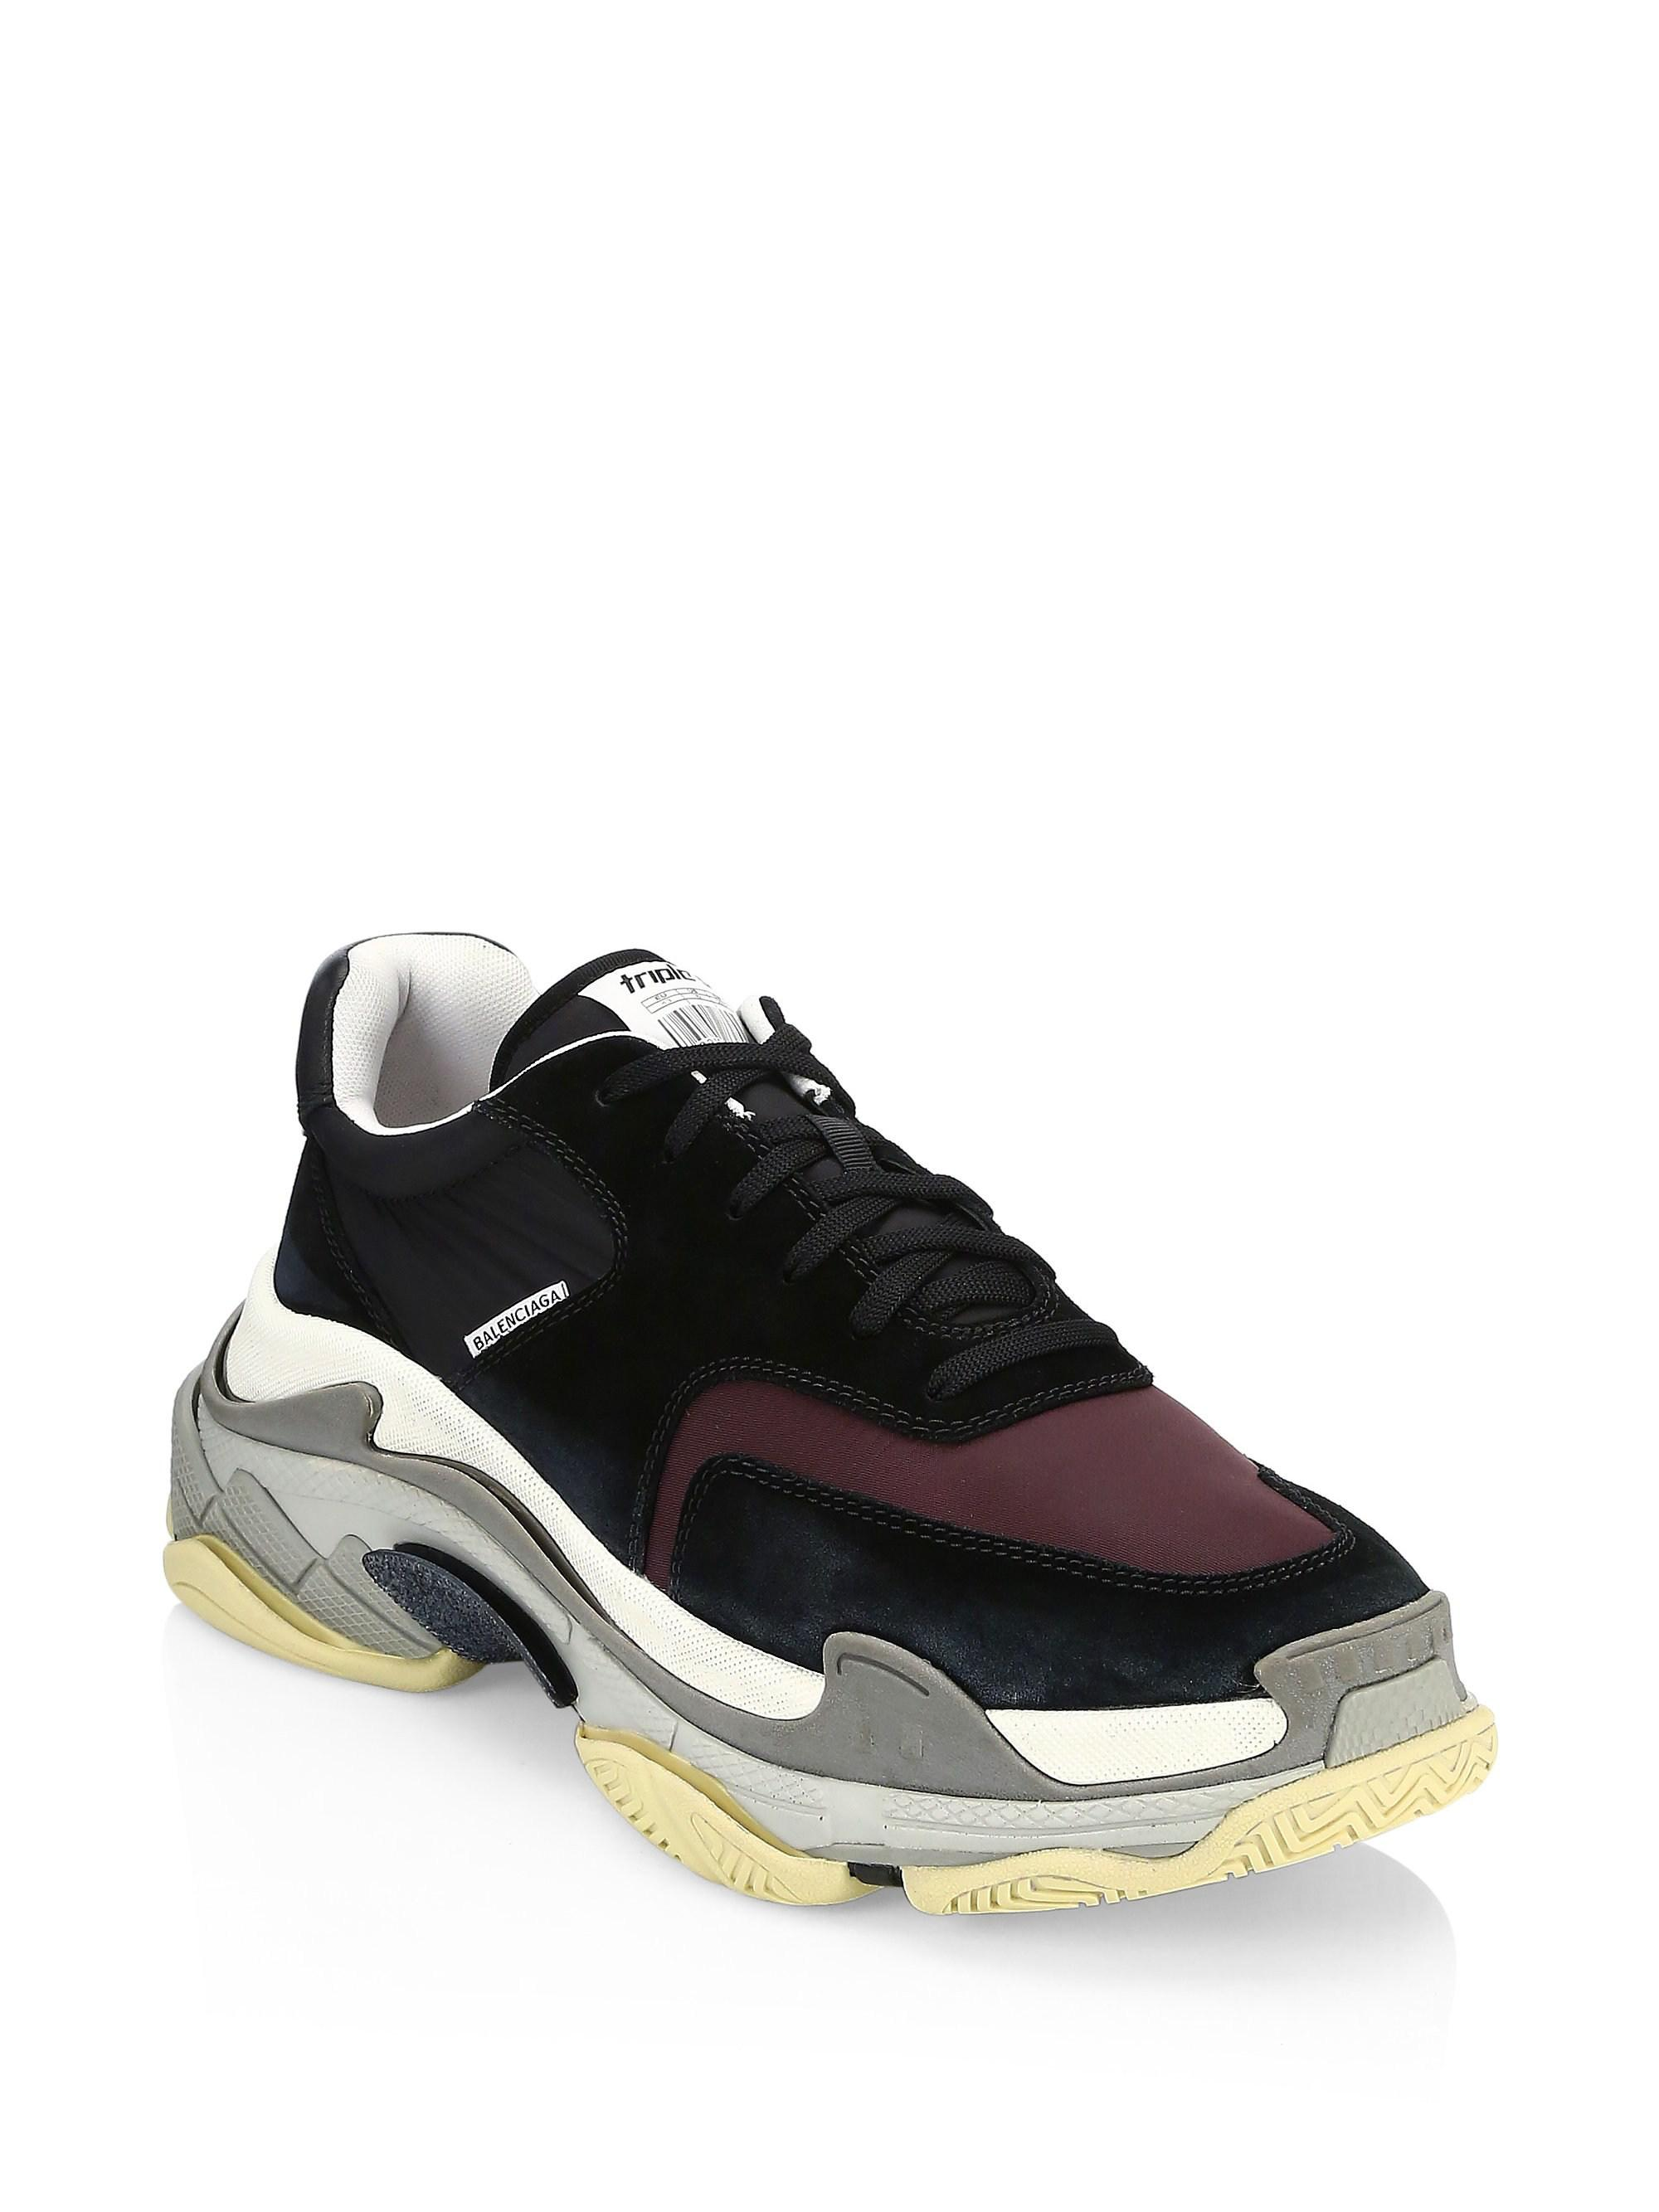 836a3c47760a View  new product 97231 83332 Balenciaga. Men s Triple S Trainer Sneakers  ...